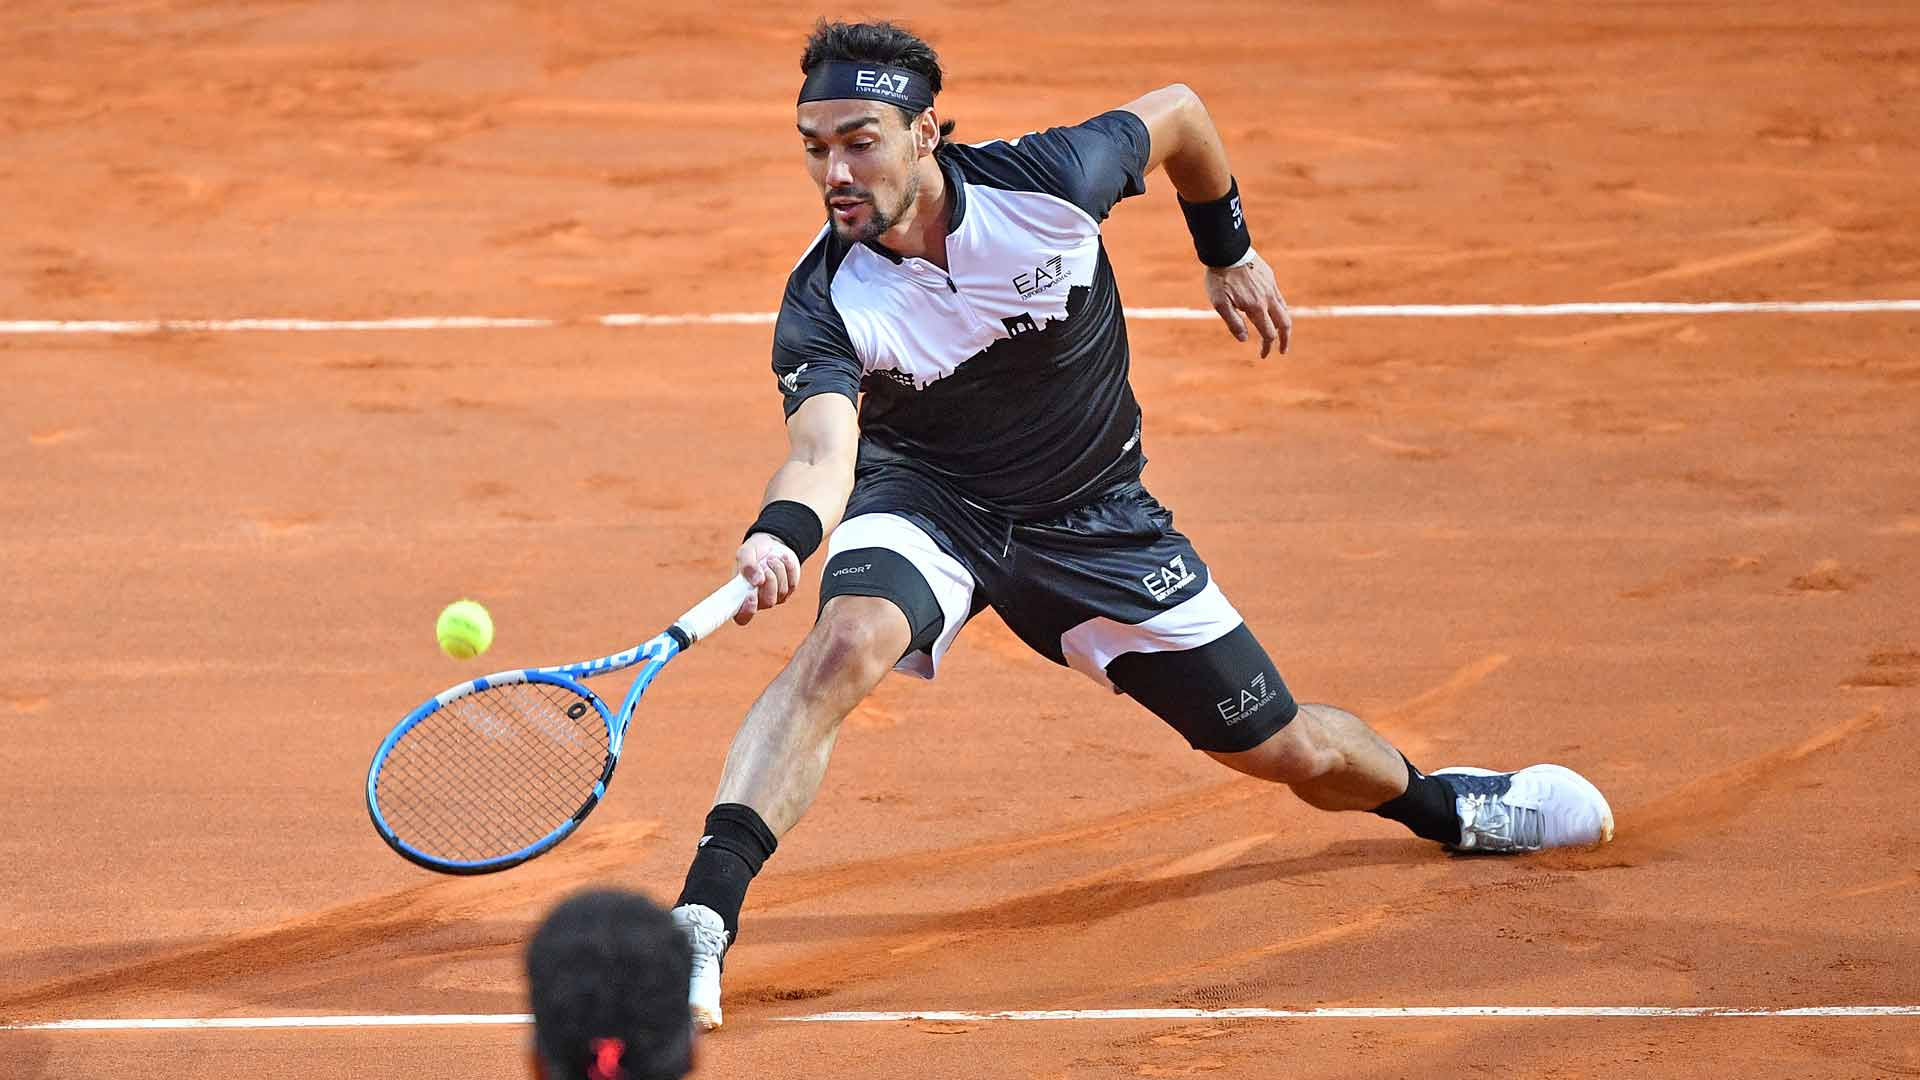 Fabio Fognini defeats Jo-Wilfried Tsonga in the first round of the Internazionali BNL d'Italia in Rome